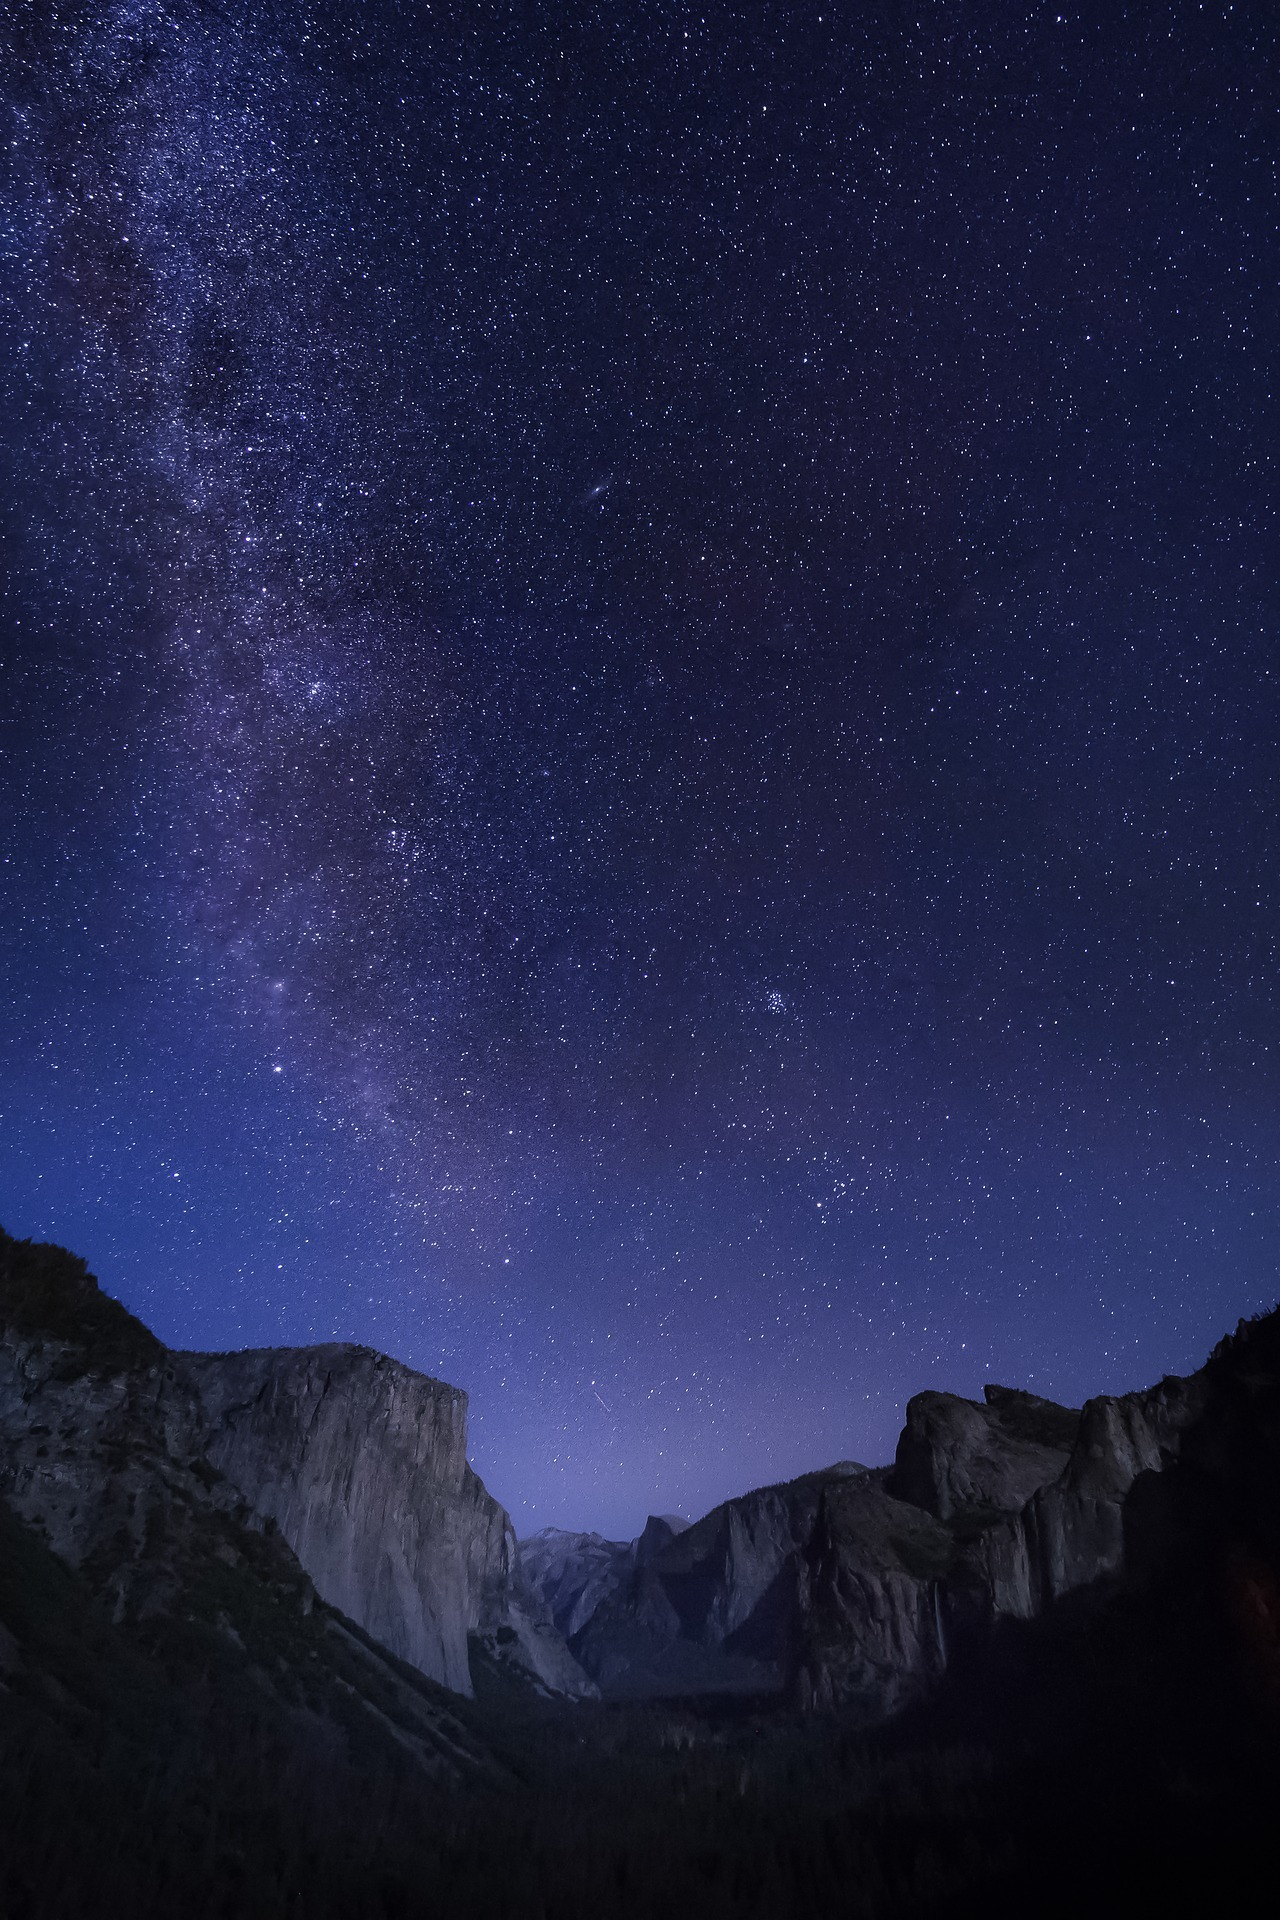 A vertical landscape photo showing Tunnel View under a deep blue and purple night sky, with the Milky Way glittering over El Capitan, Half Dome and Cathedral Rocks.